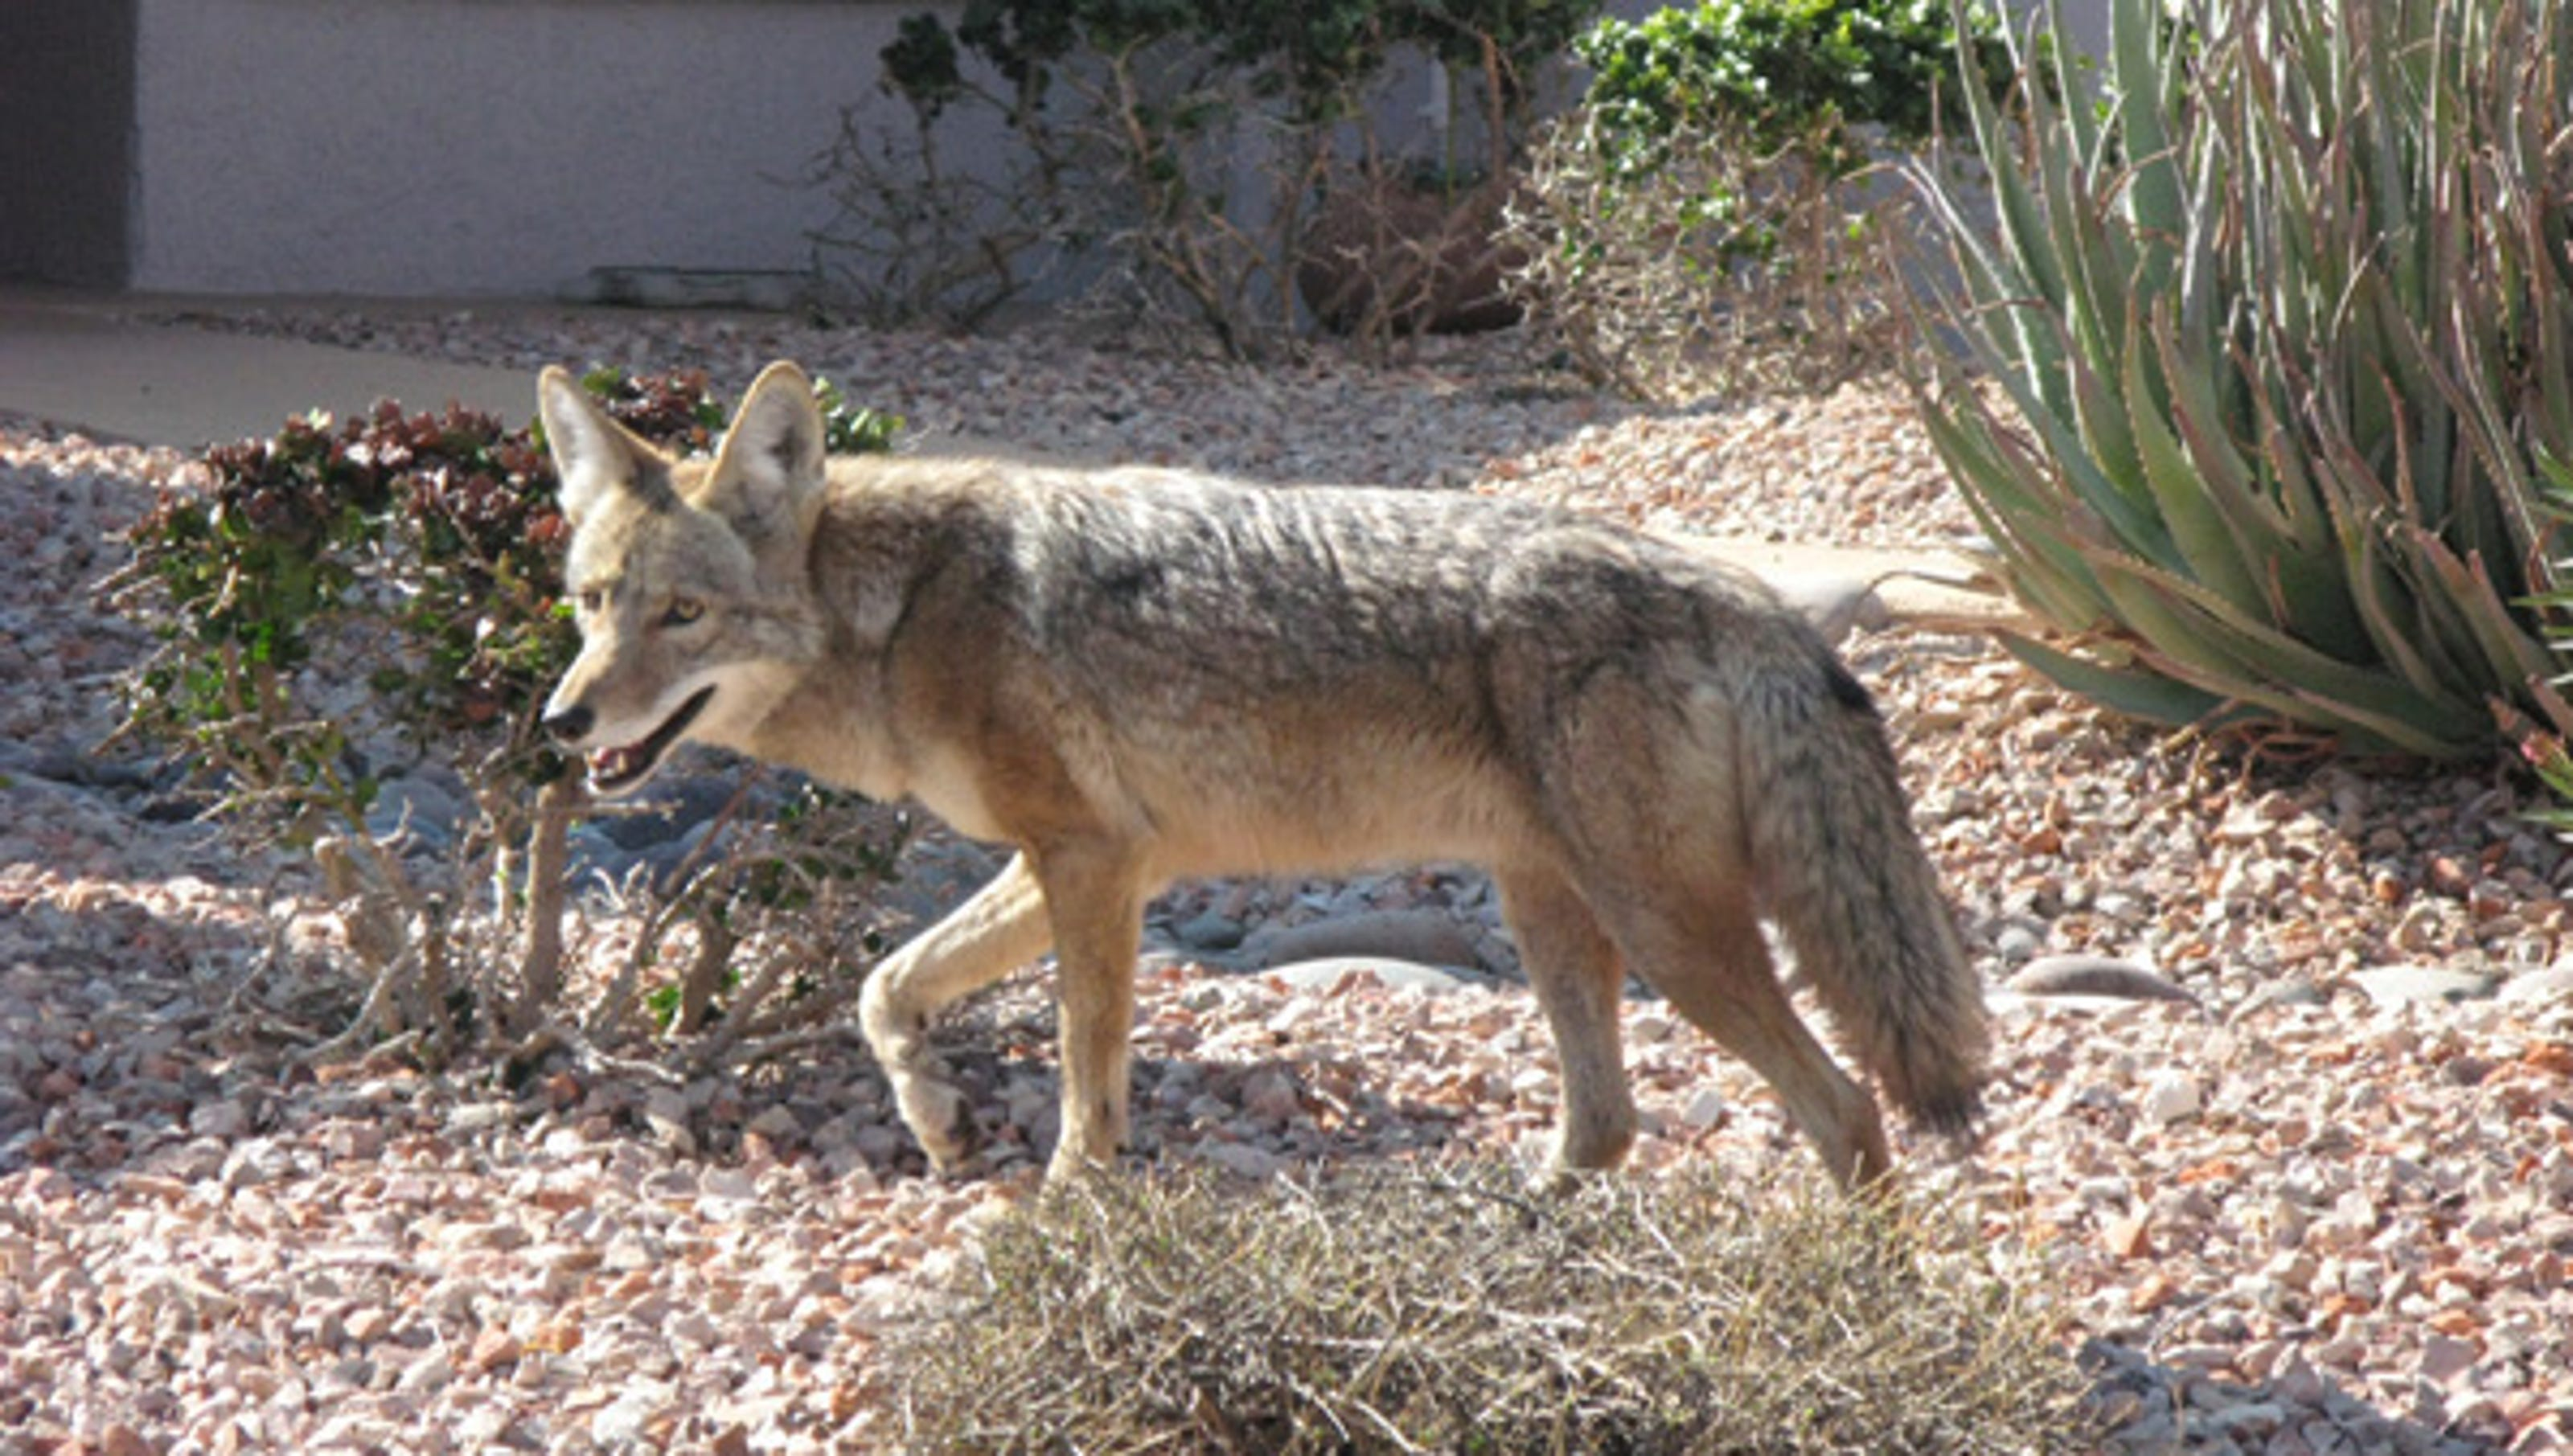 Have You Seen A Coyote In Your Neighborhood Lately Here S Why